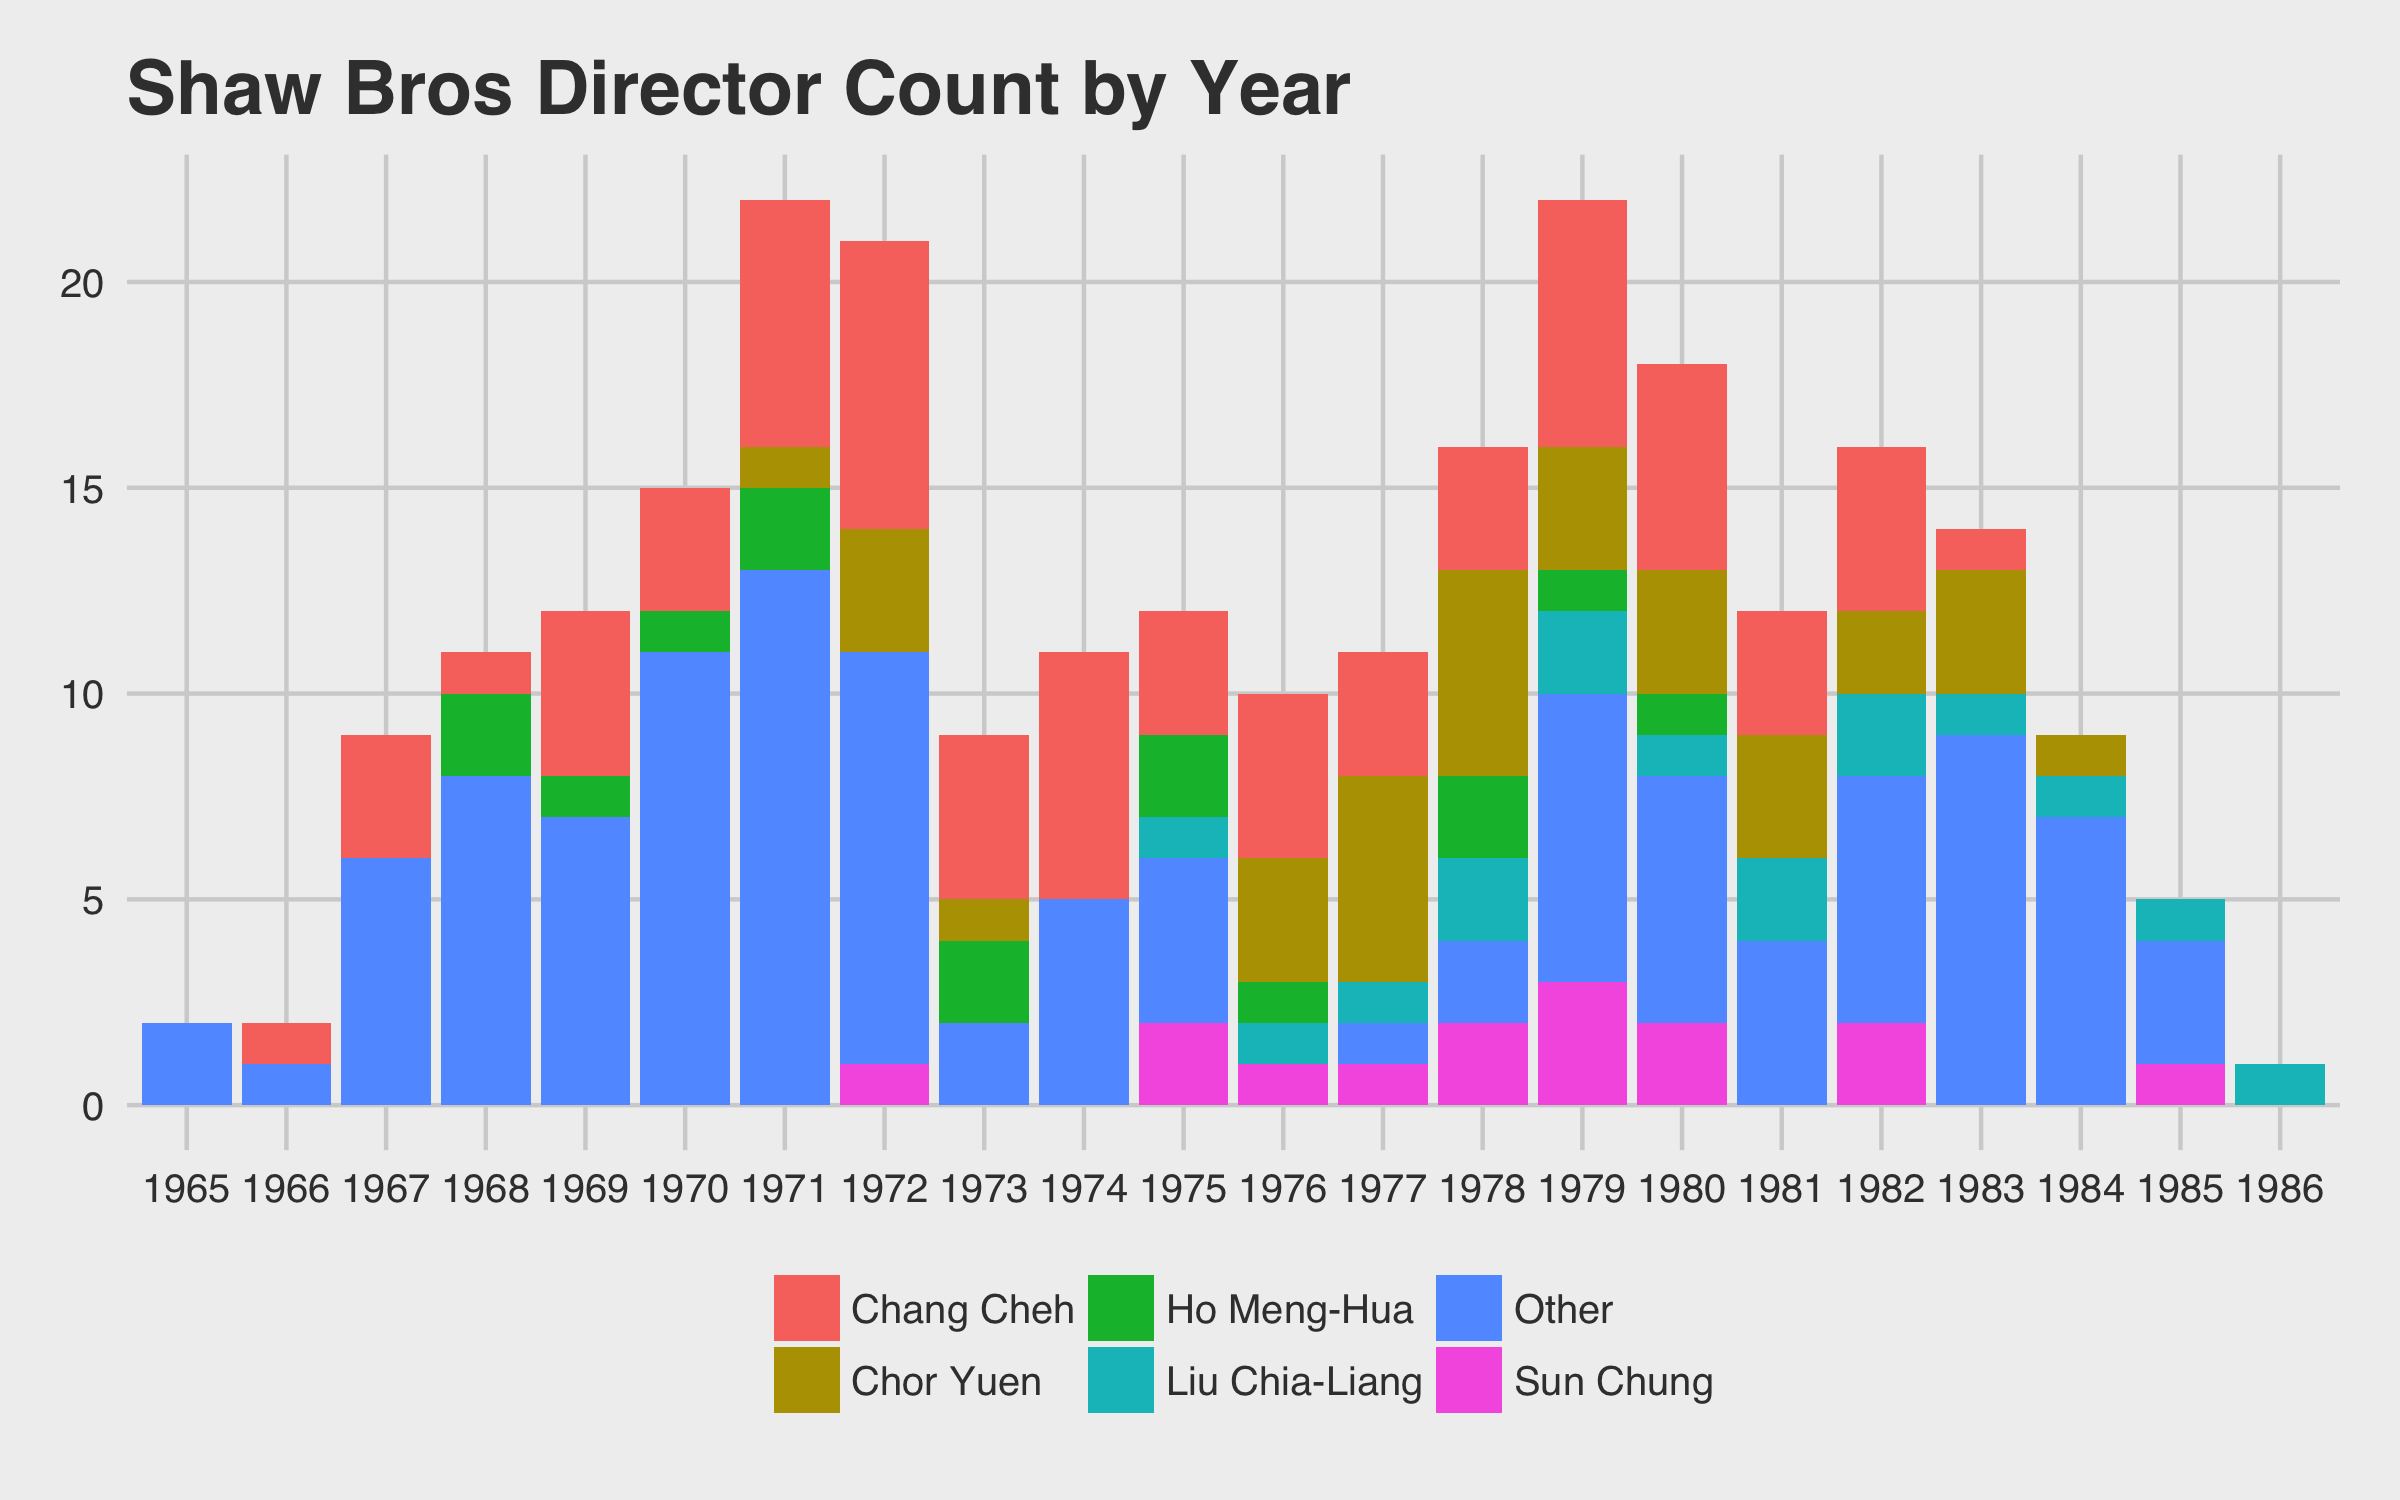 Top Directors by Year